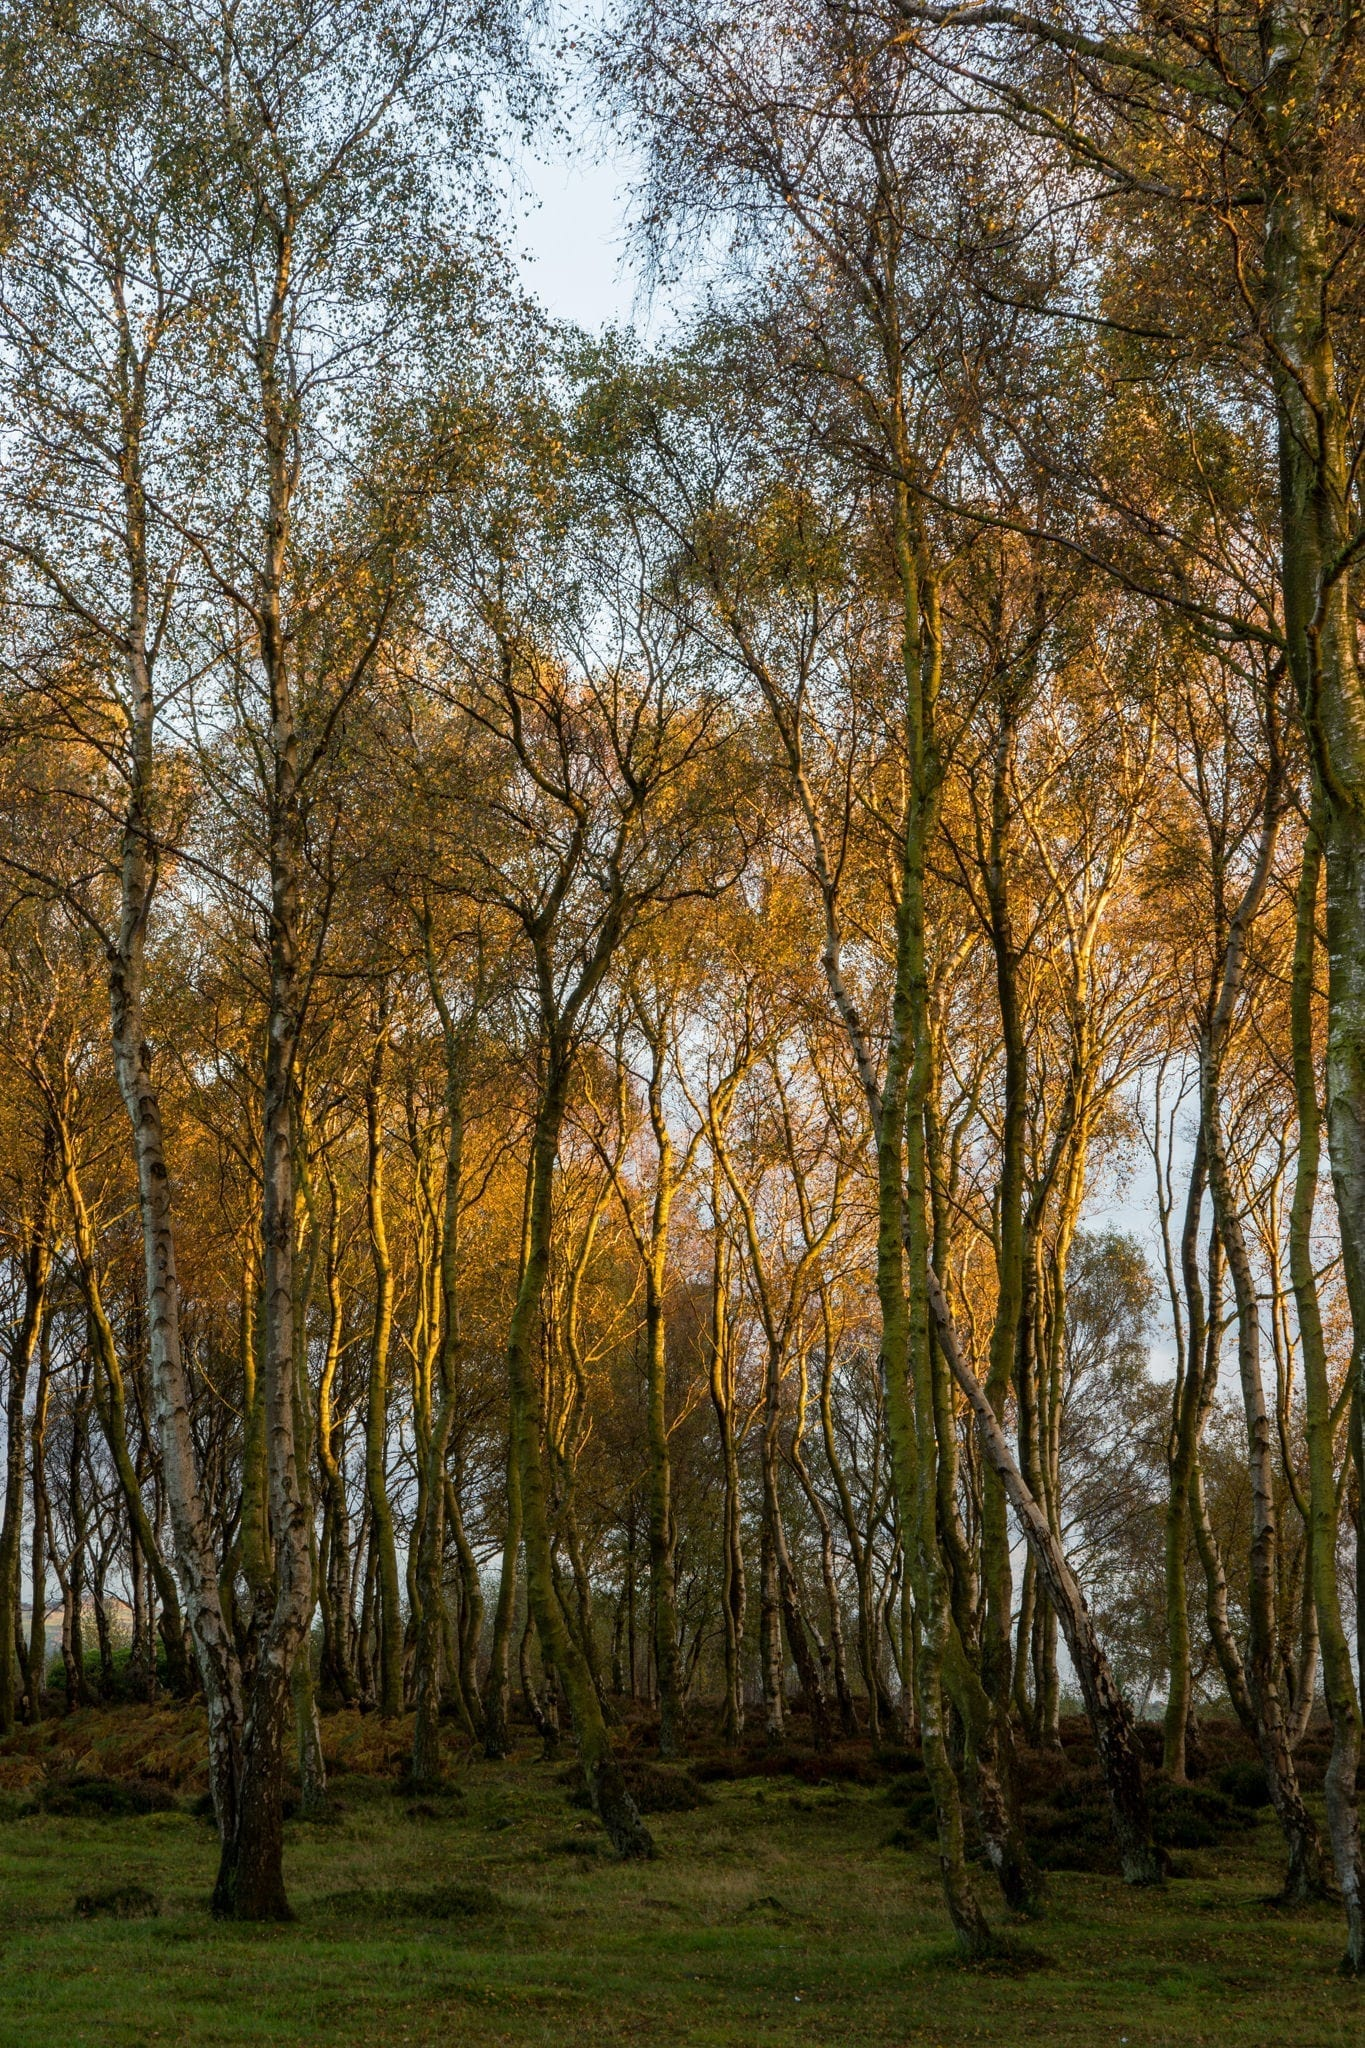 Autumn Birch Trees - Autumn in the Peak District Photography Workshop